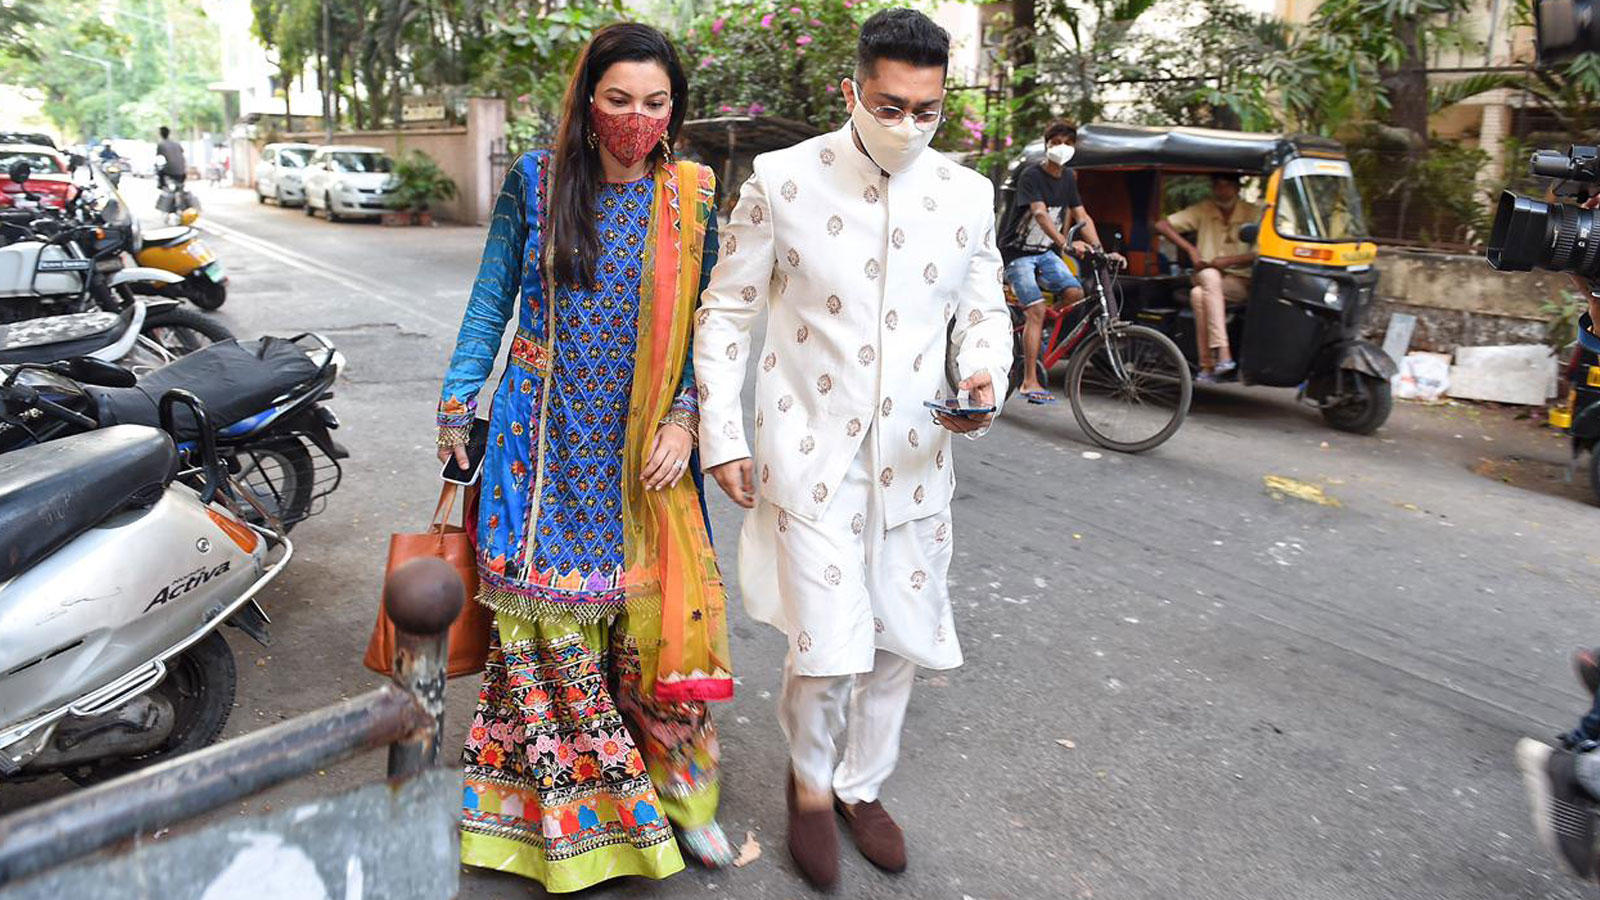 gauahar-khan-and-zaid-darbar-get-papped-in-andheri